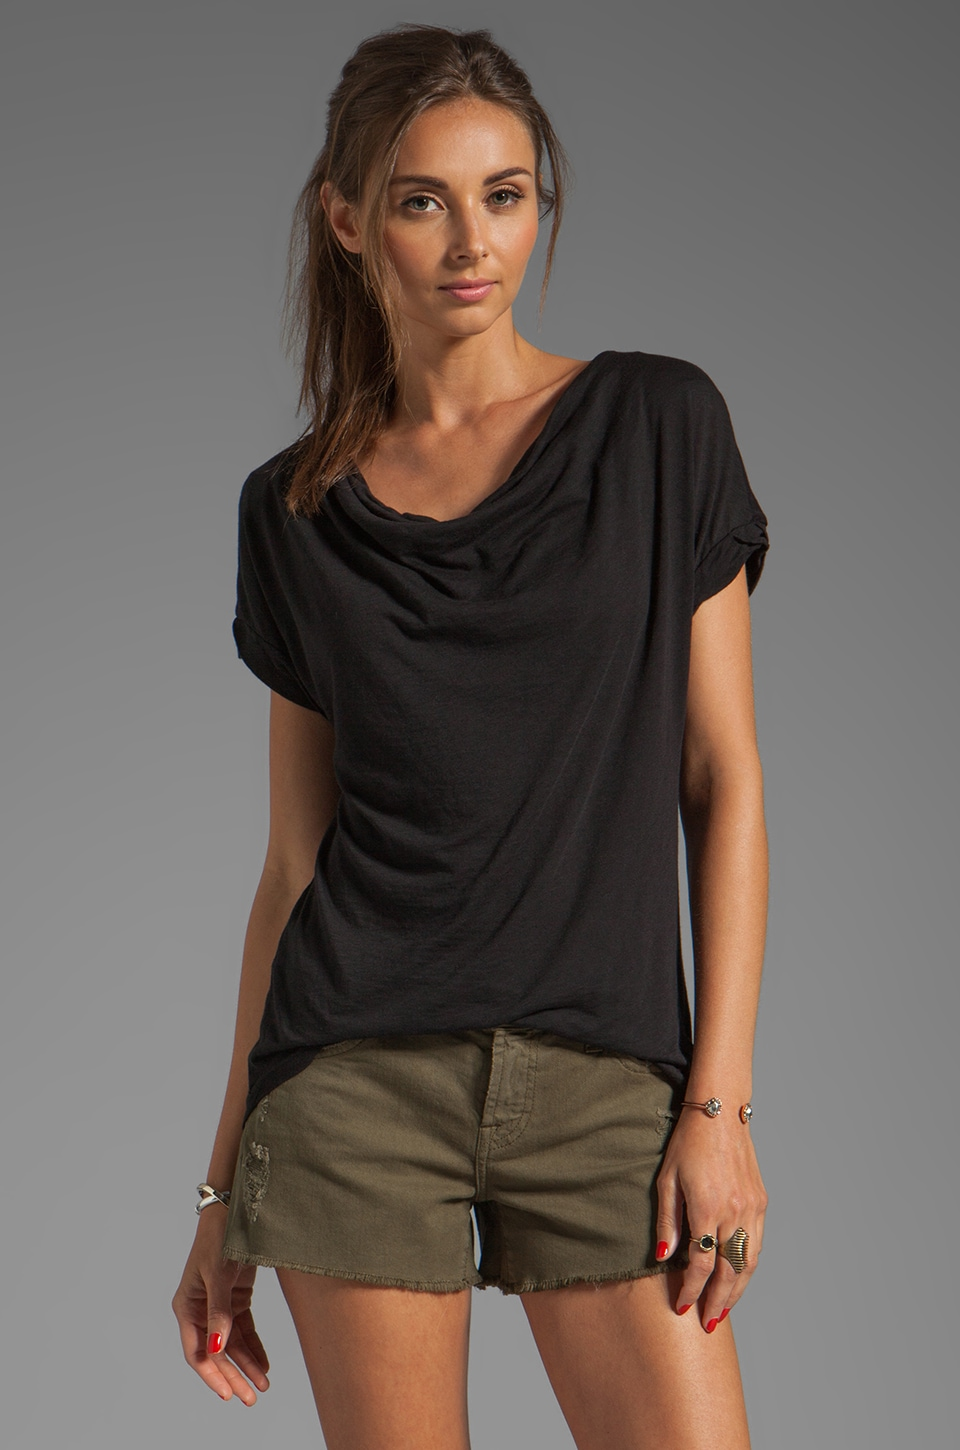 Splendid Very Light Jersey Drape Top in Black